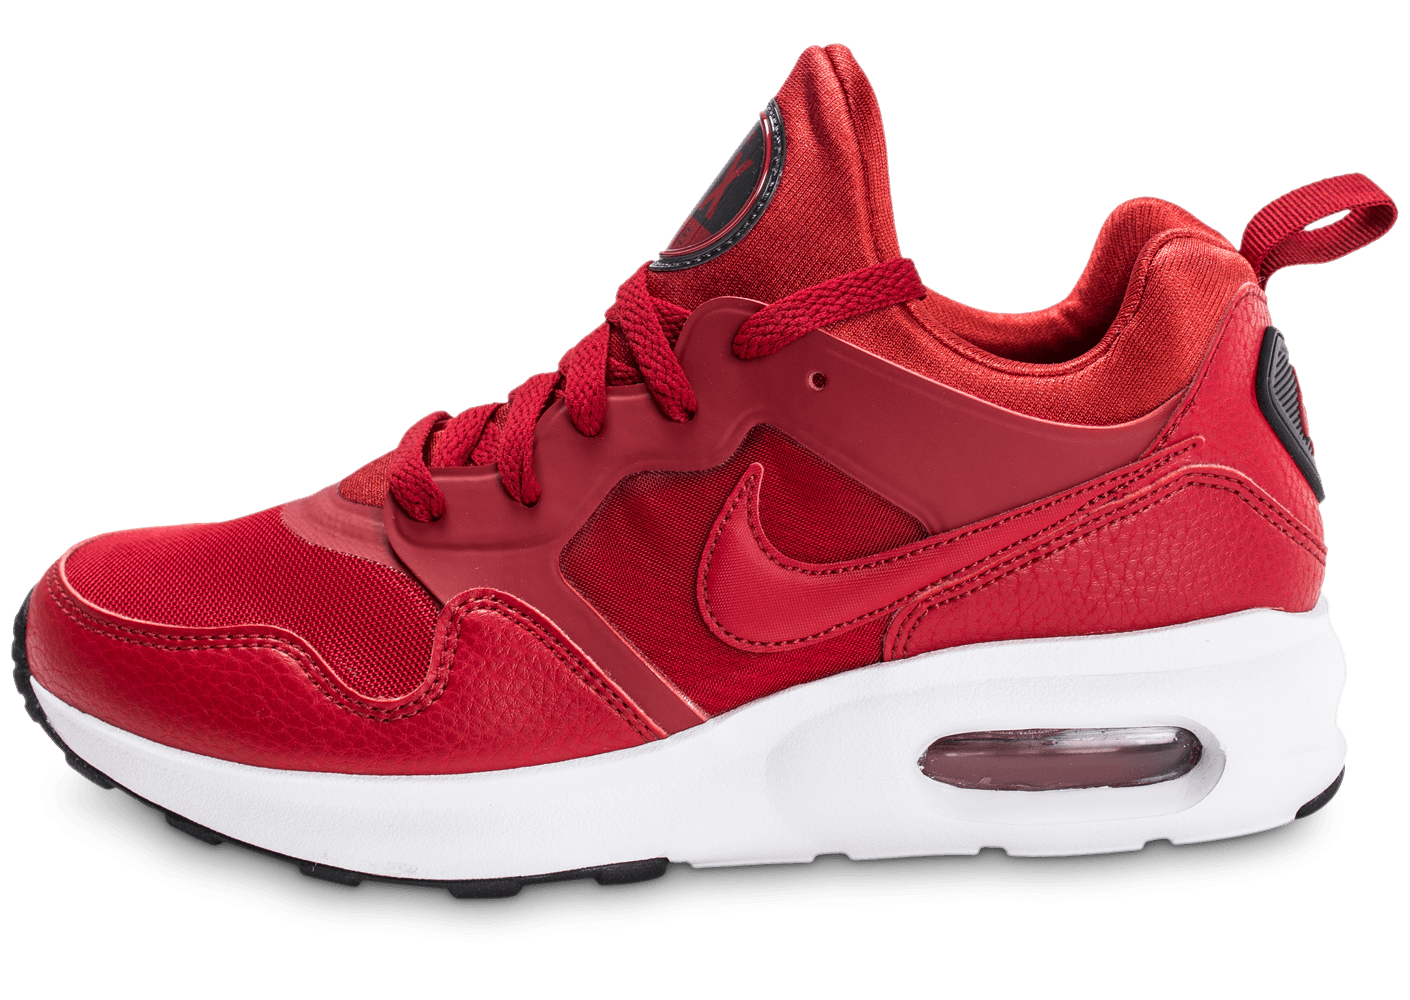 finest selection 45234 37c3a Nike Air Max Prime rouge - Chaussures Baskets homme - Chausport